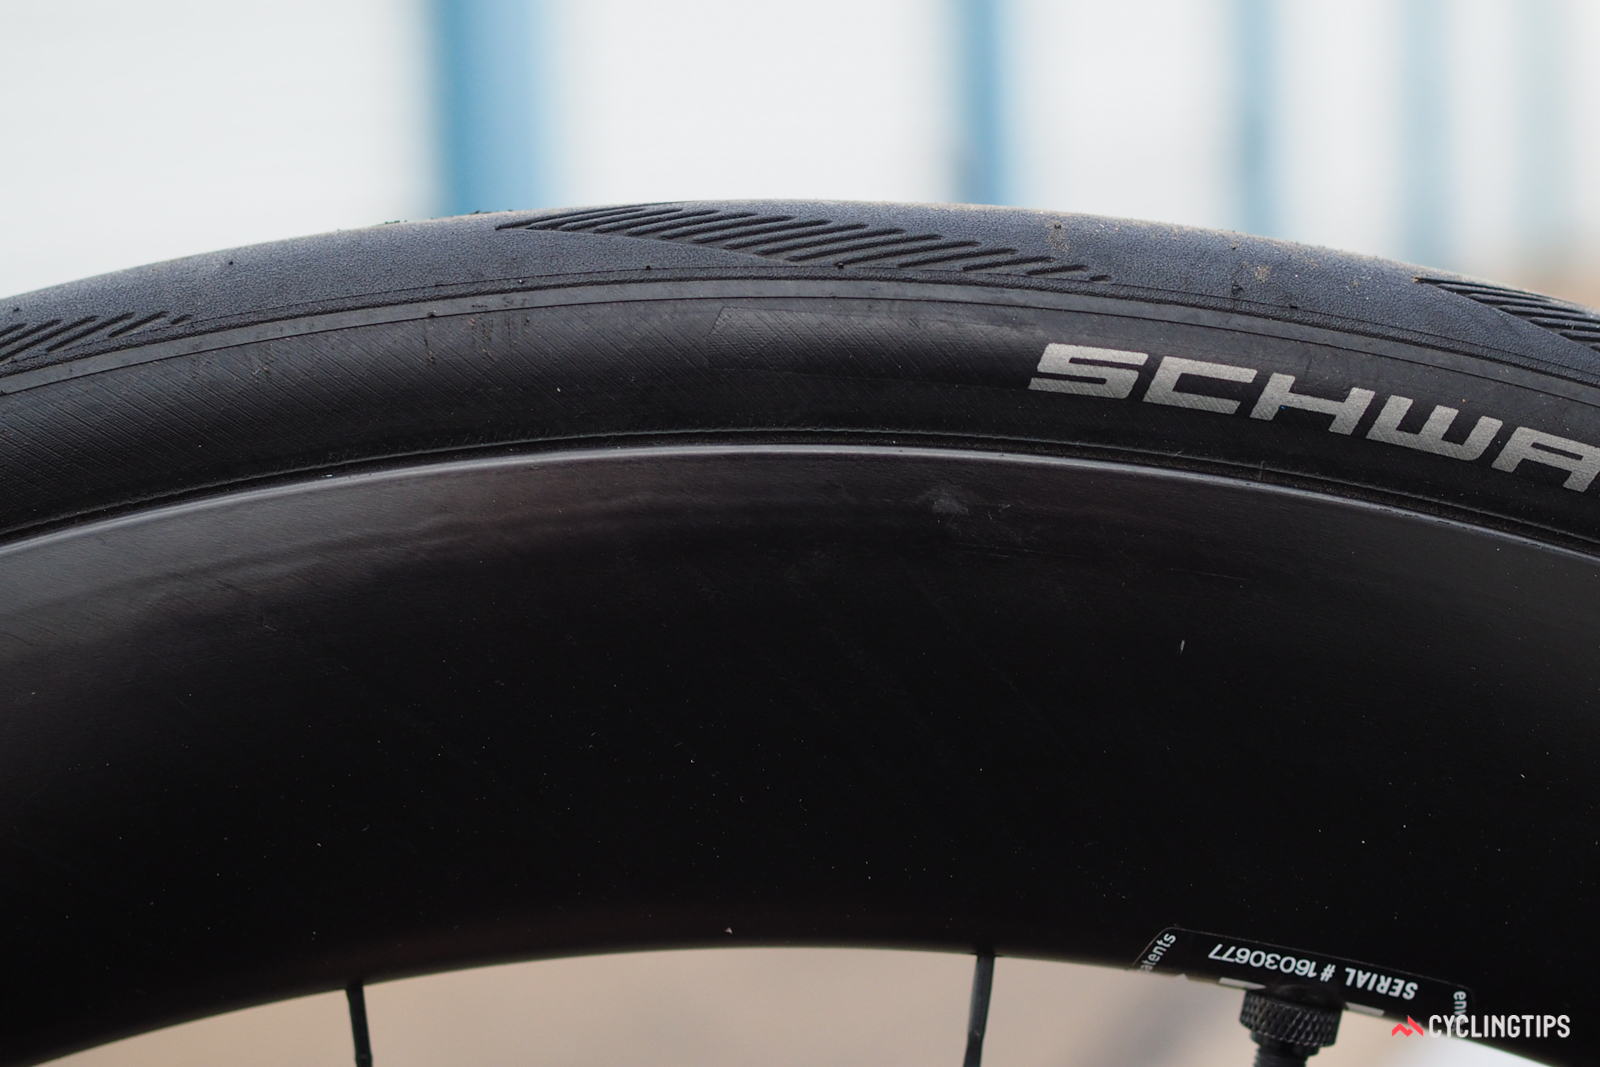 Both wheels had disconcerting blemishes that could be seen and felt. Exactly how much such voids and wrinkles affect the structural performance of the wheel isn't entirely clear, but they're unacceptable for a premium carbon fiber wheelset.